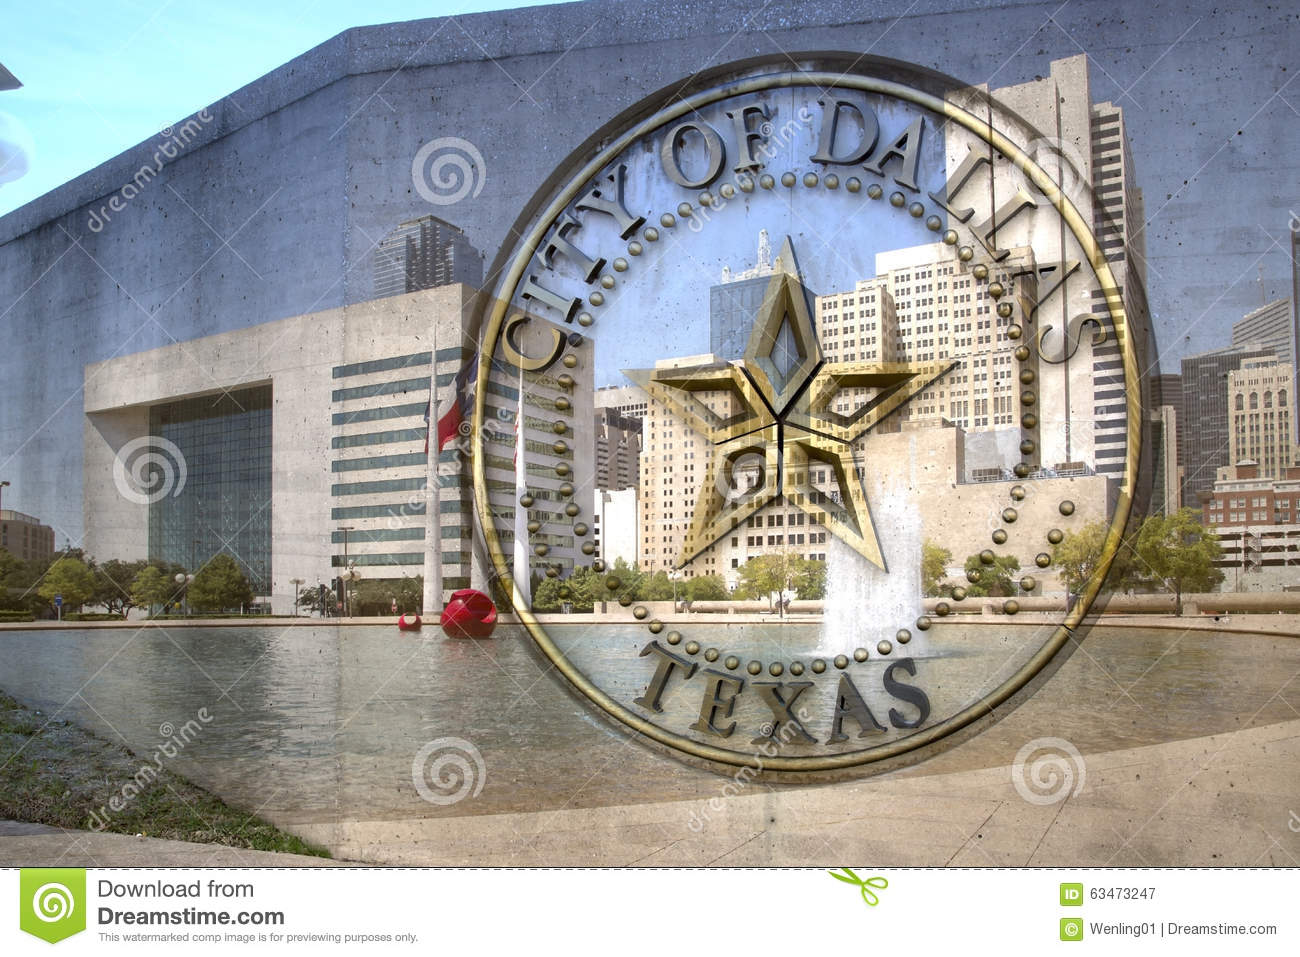 City of  Dallas TX sign and city hall